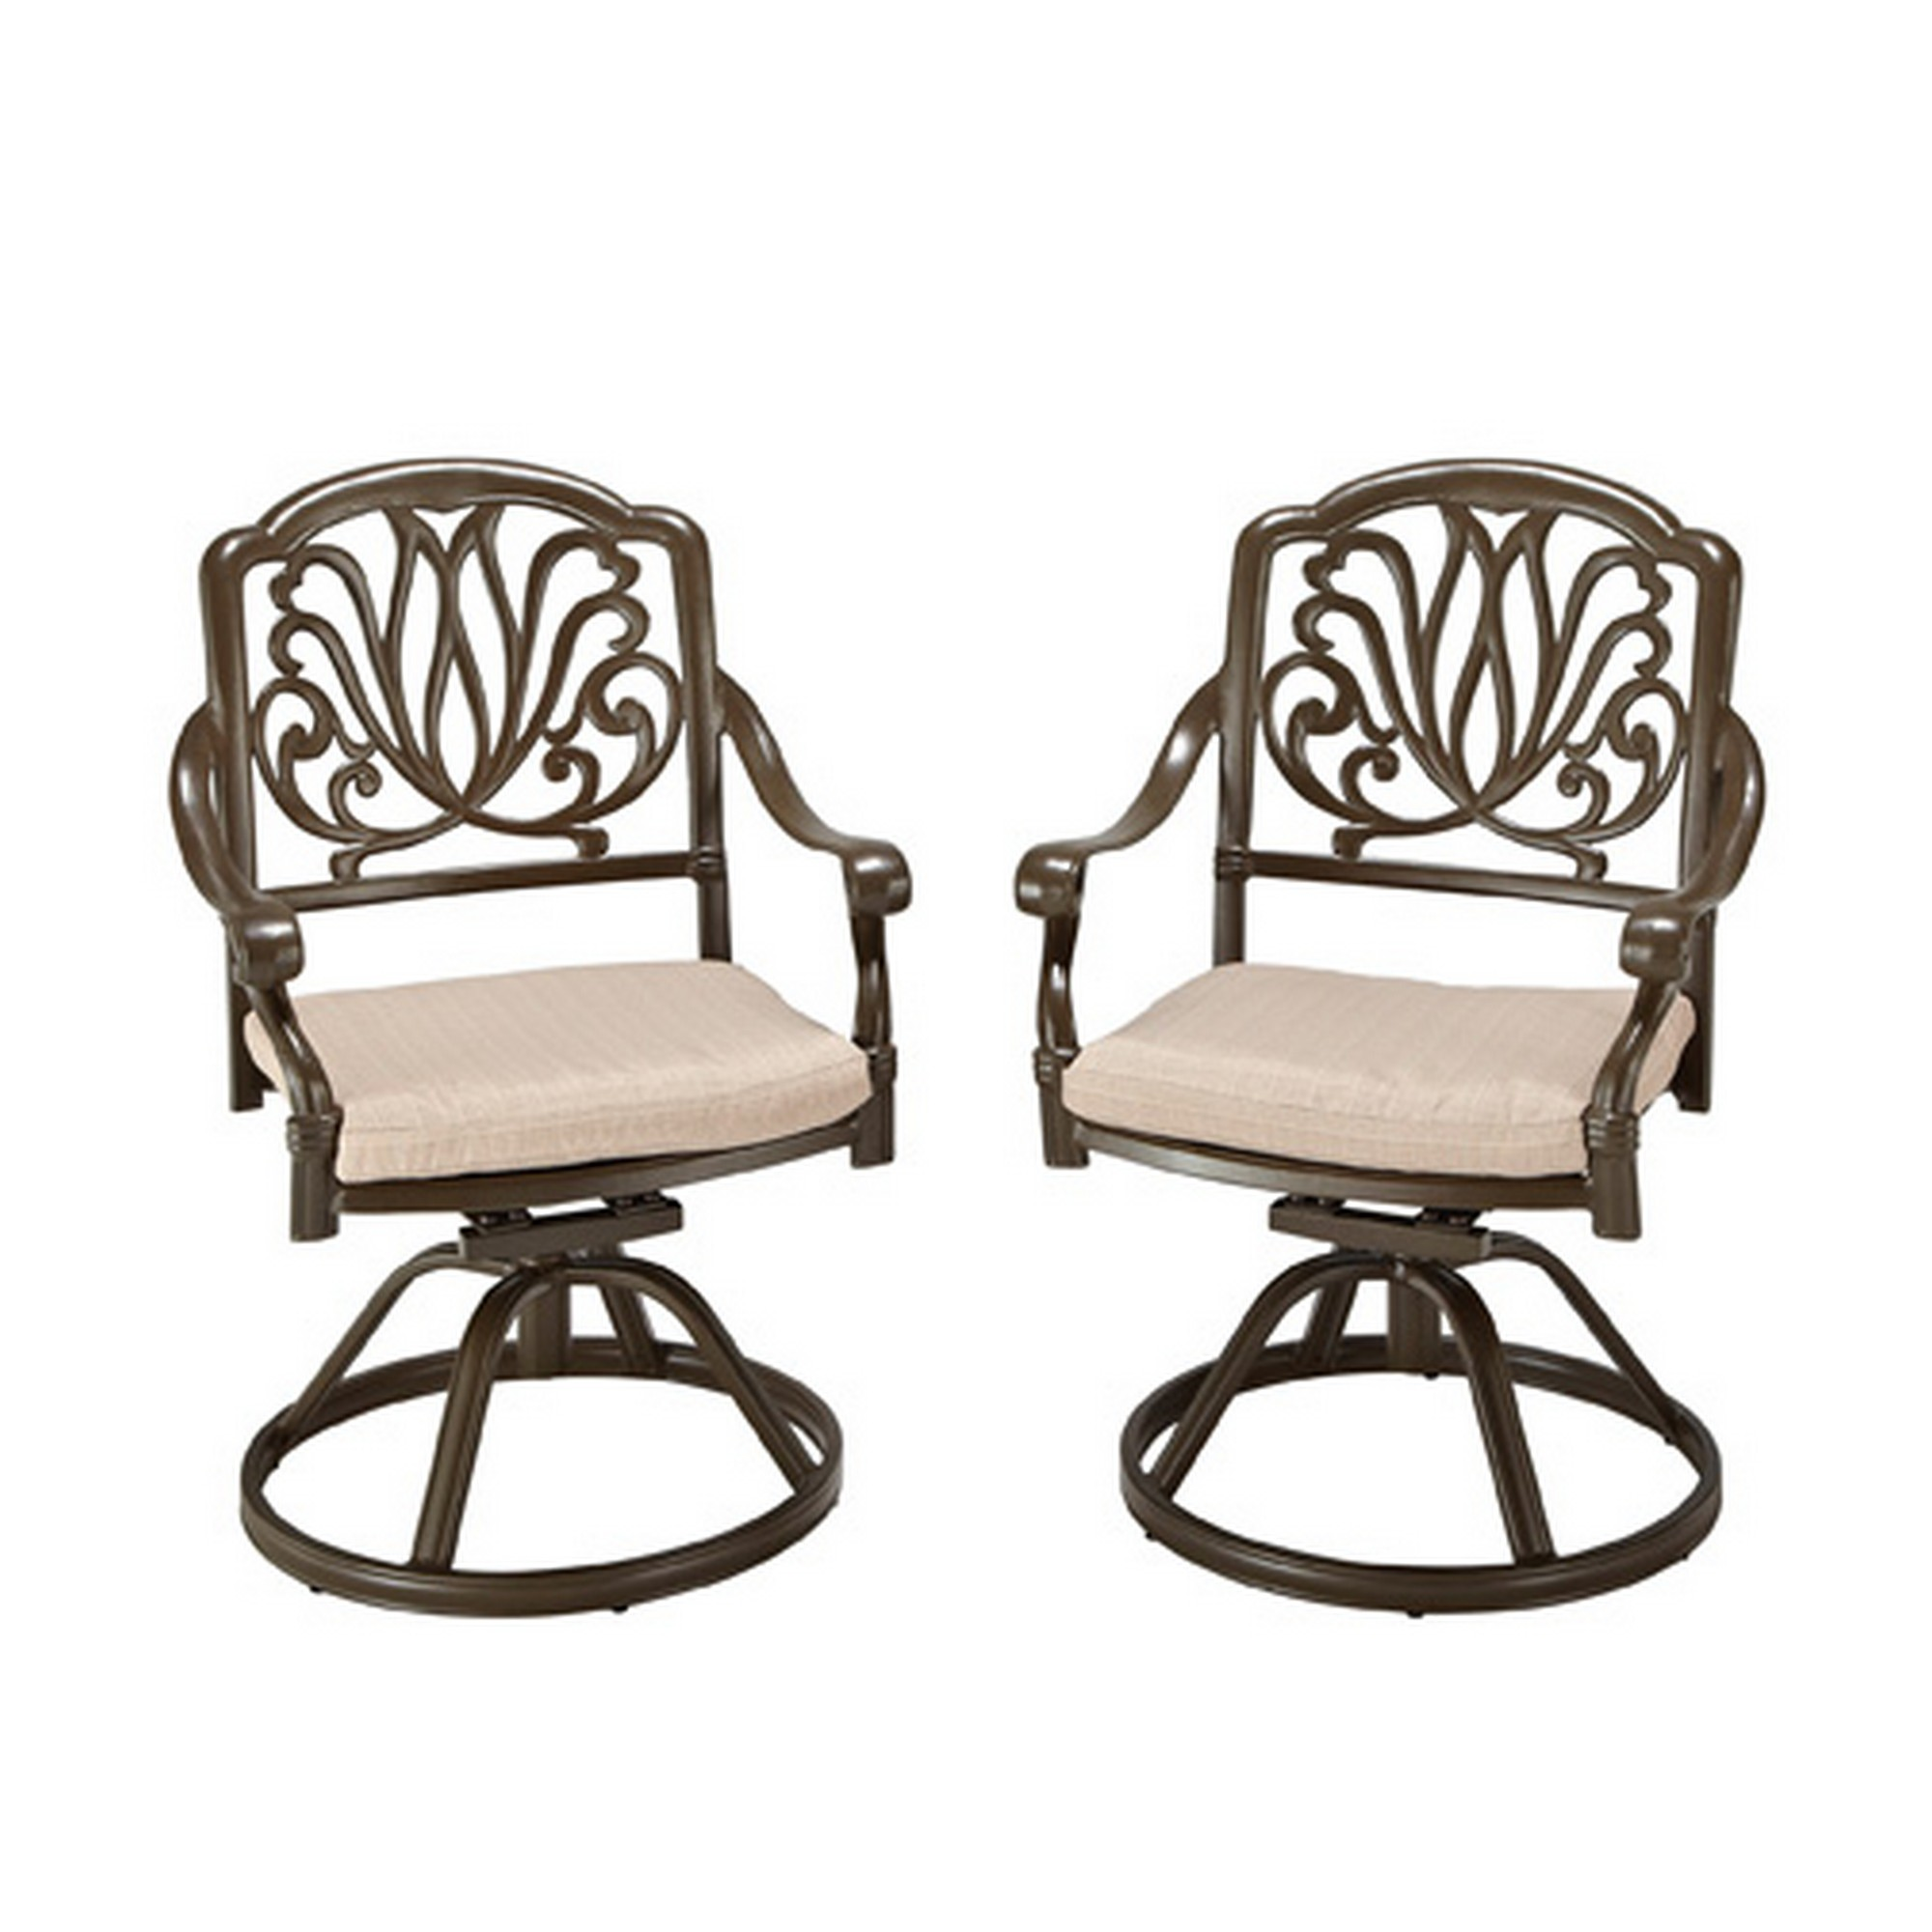 Capri Swivel Rock Dining Chair by homestyles at Sam Levitz Outlet